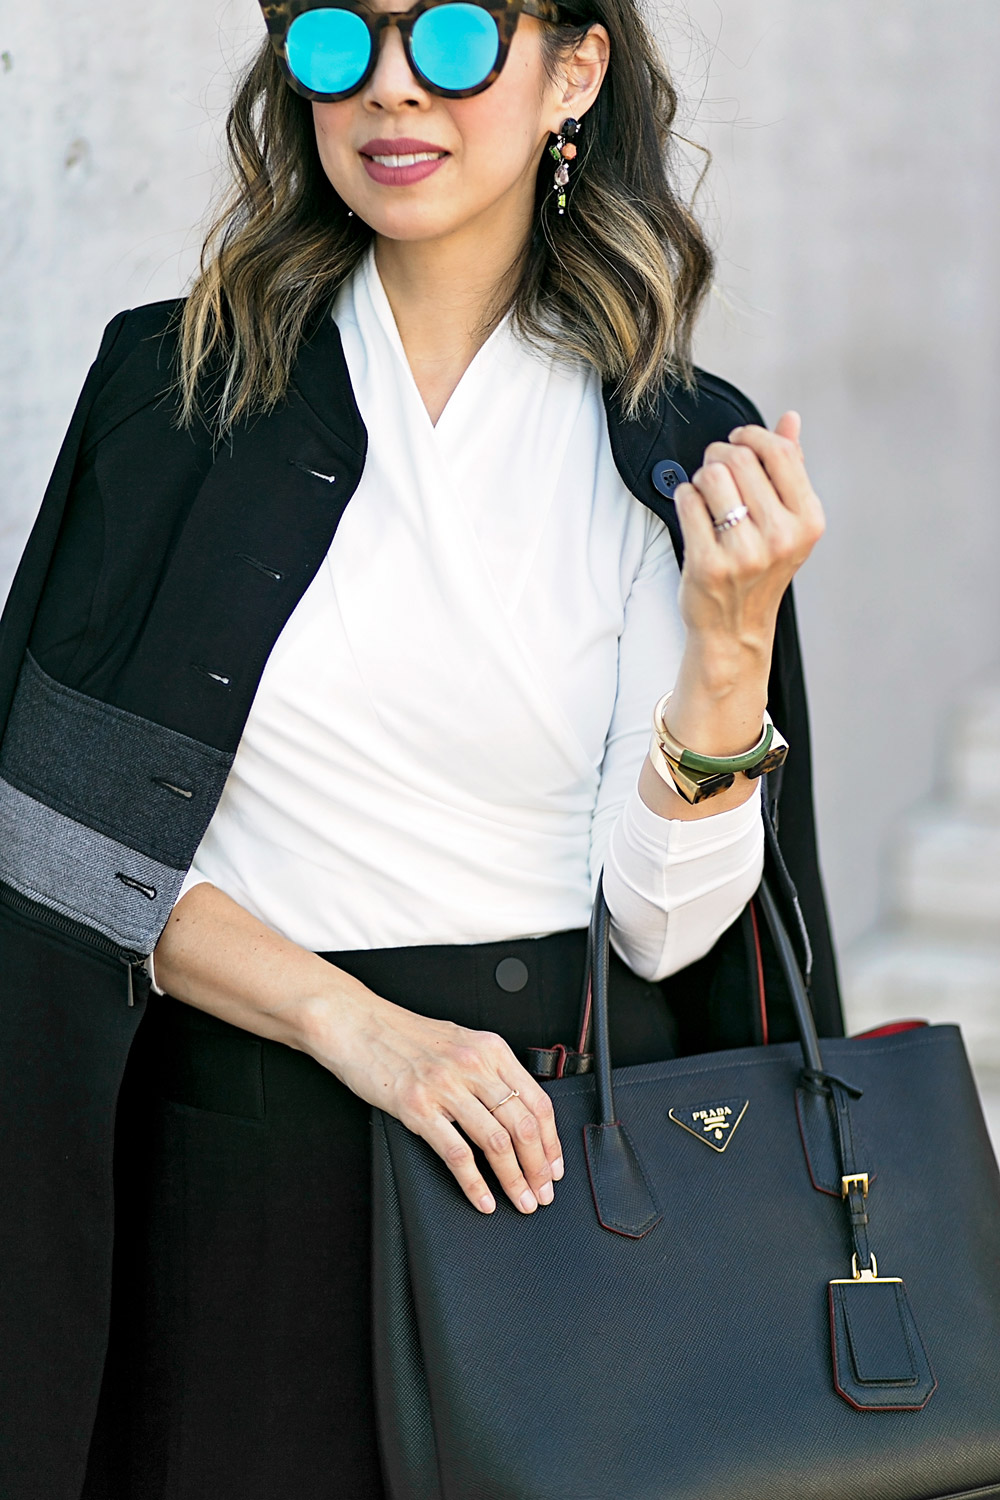 cabi wrap tee and utility skirt with convertible jacket for a black and white work outfit